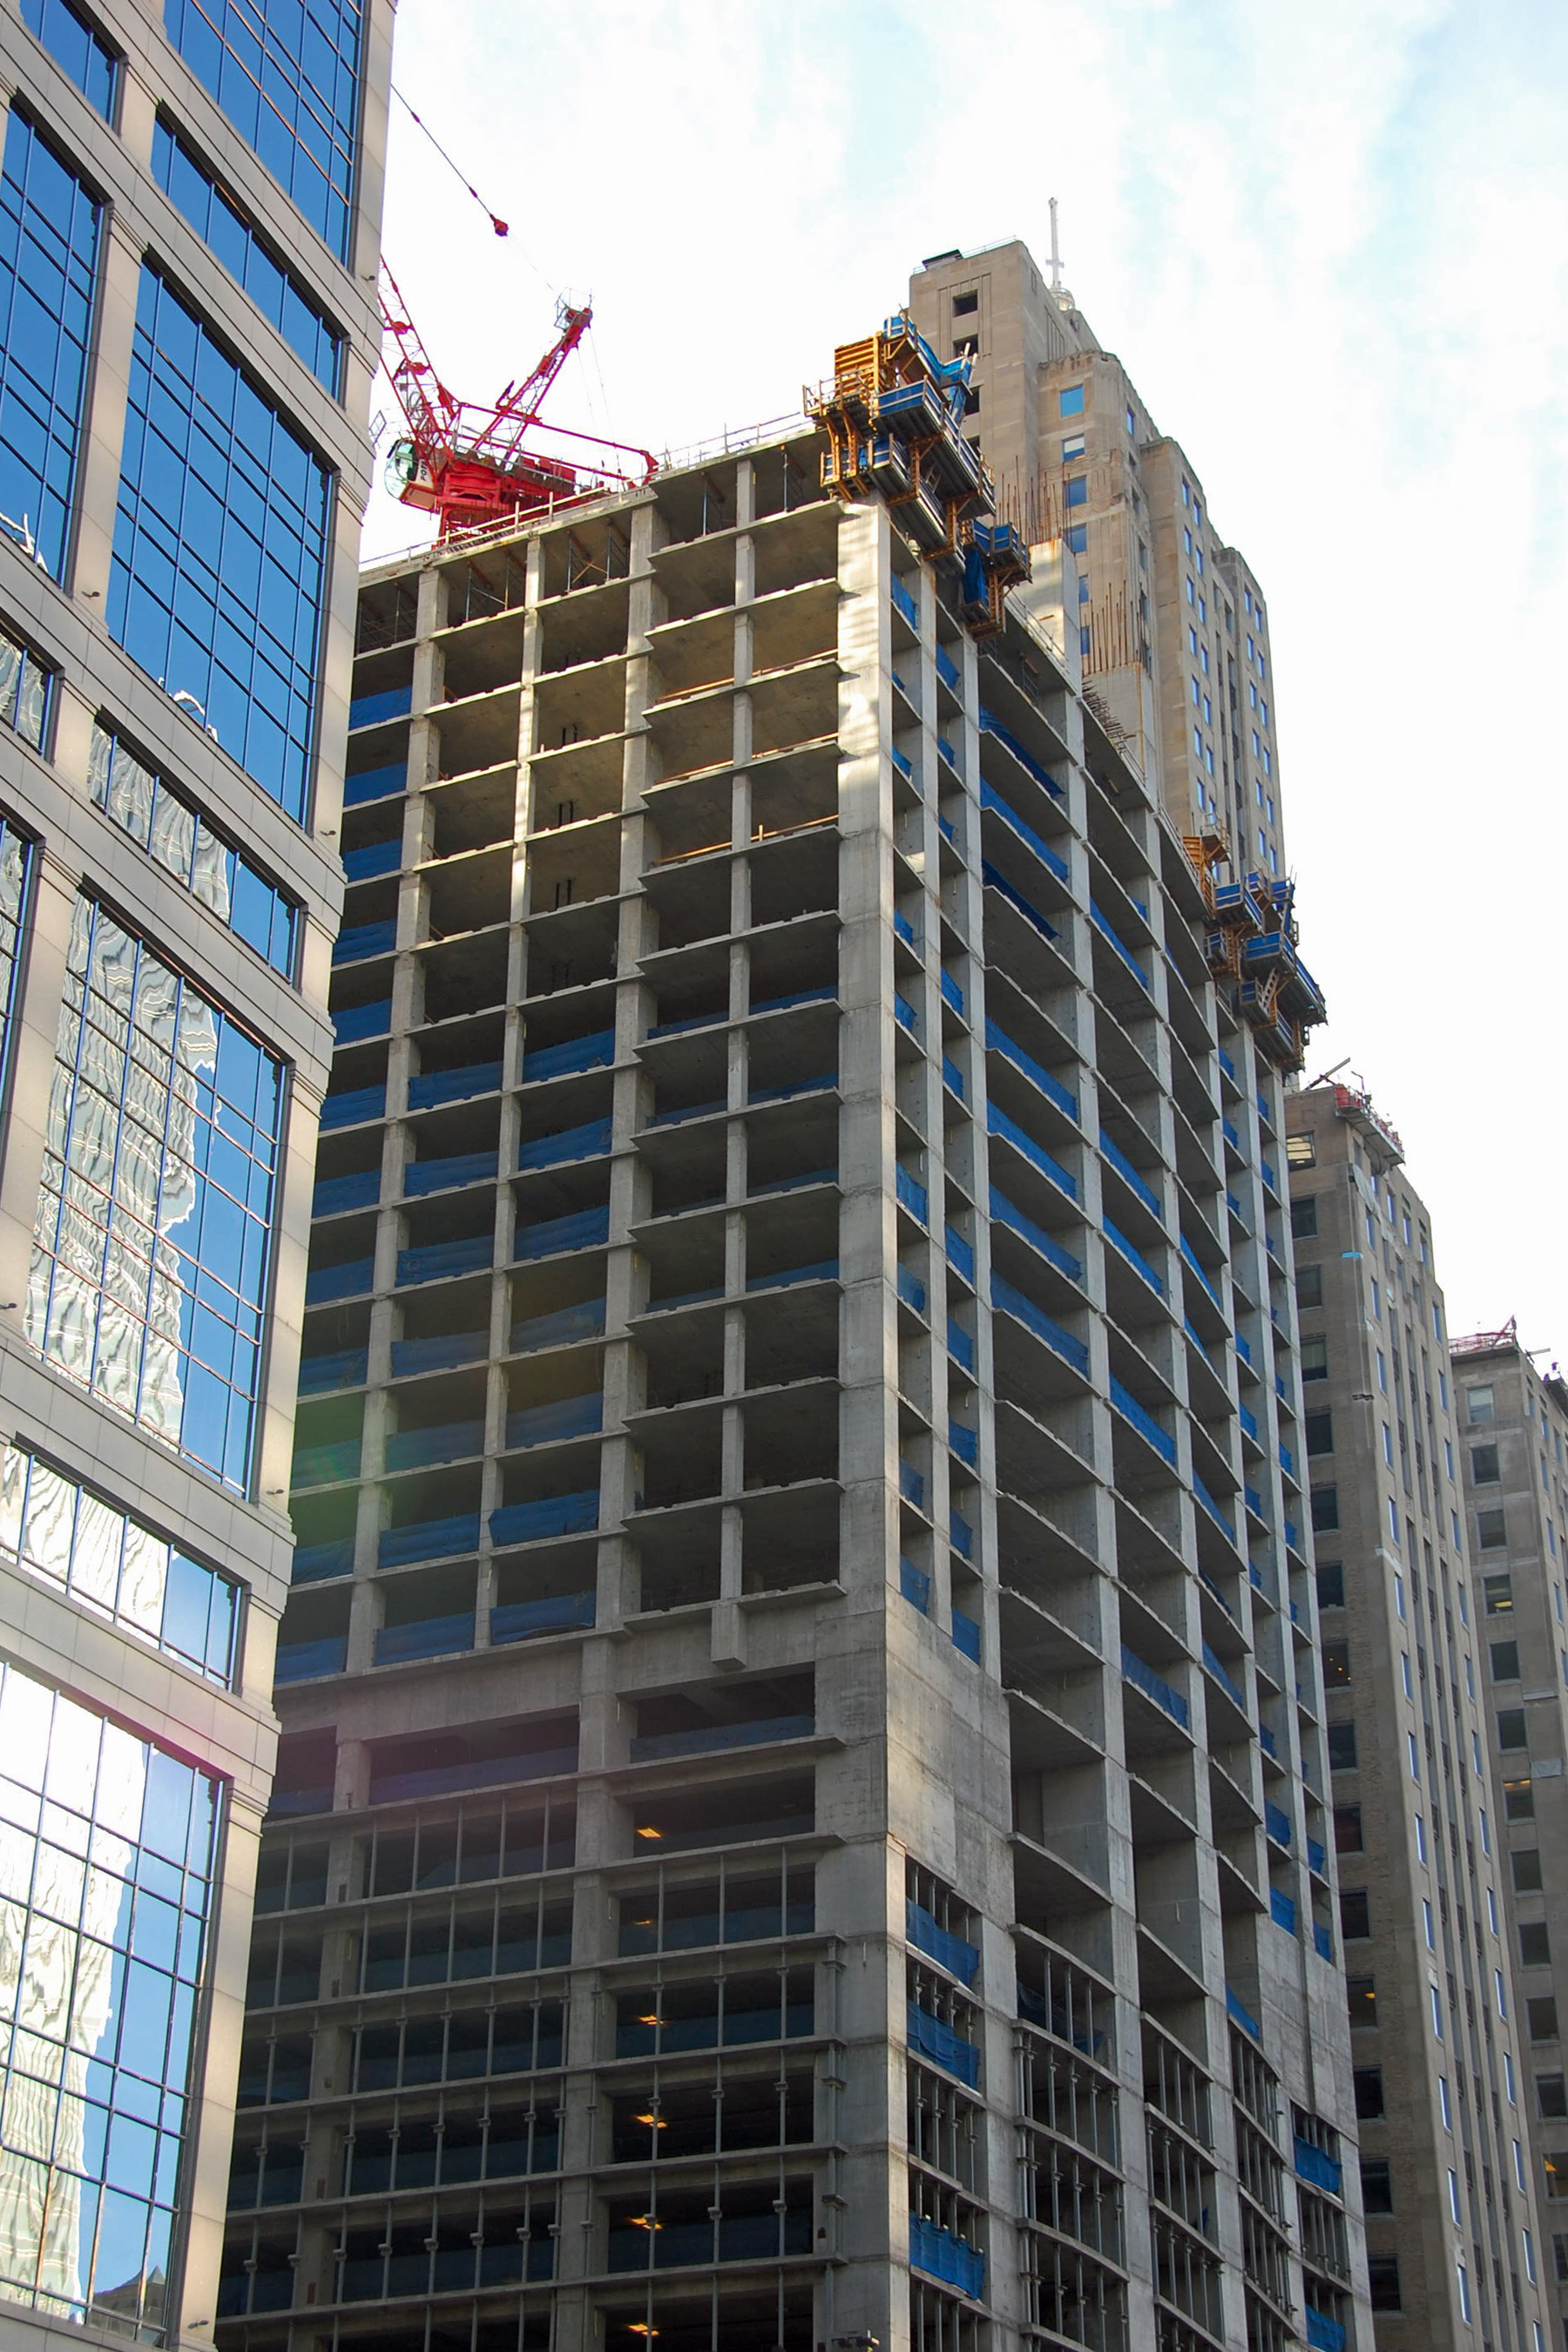 Waterview Tower, 111 W Wacker Dr, Chicago